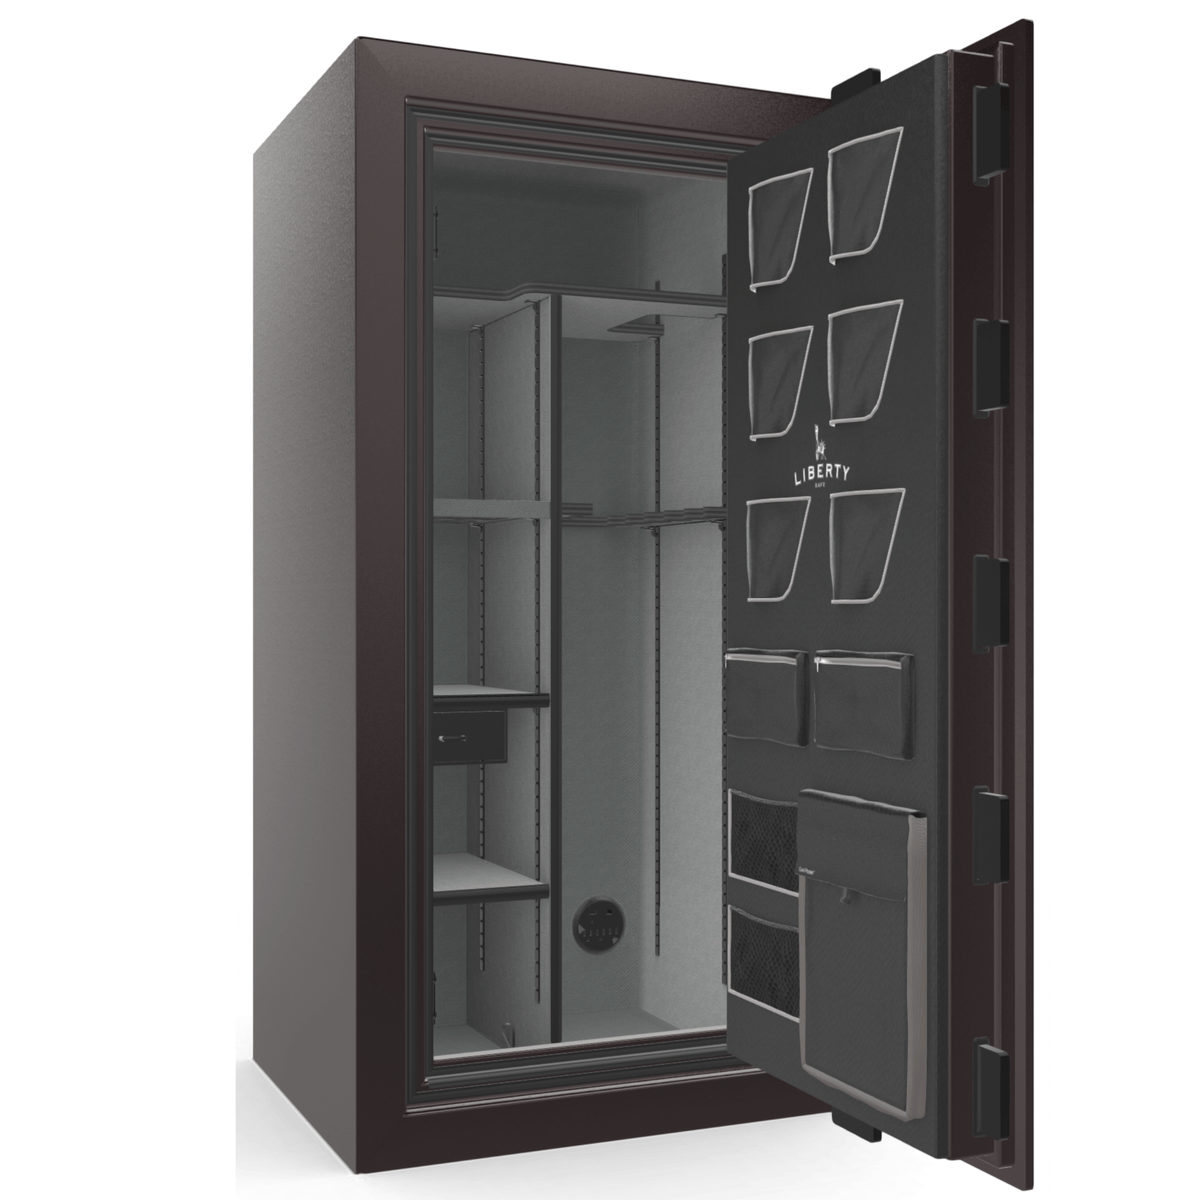 "Classic Plus | 25 | Level 7 Security | 110 Minute Fire Protection | Black Cherry Gloss | Black Electronic Lock | 60.5""(H) x 30""(W) x 29""(D)"